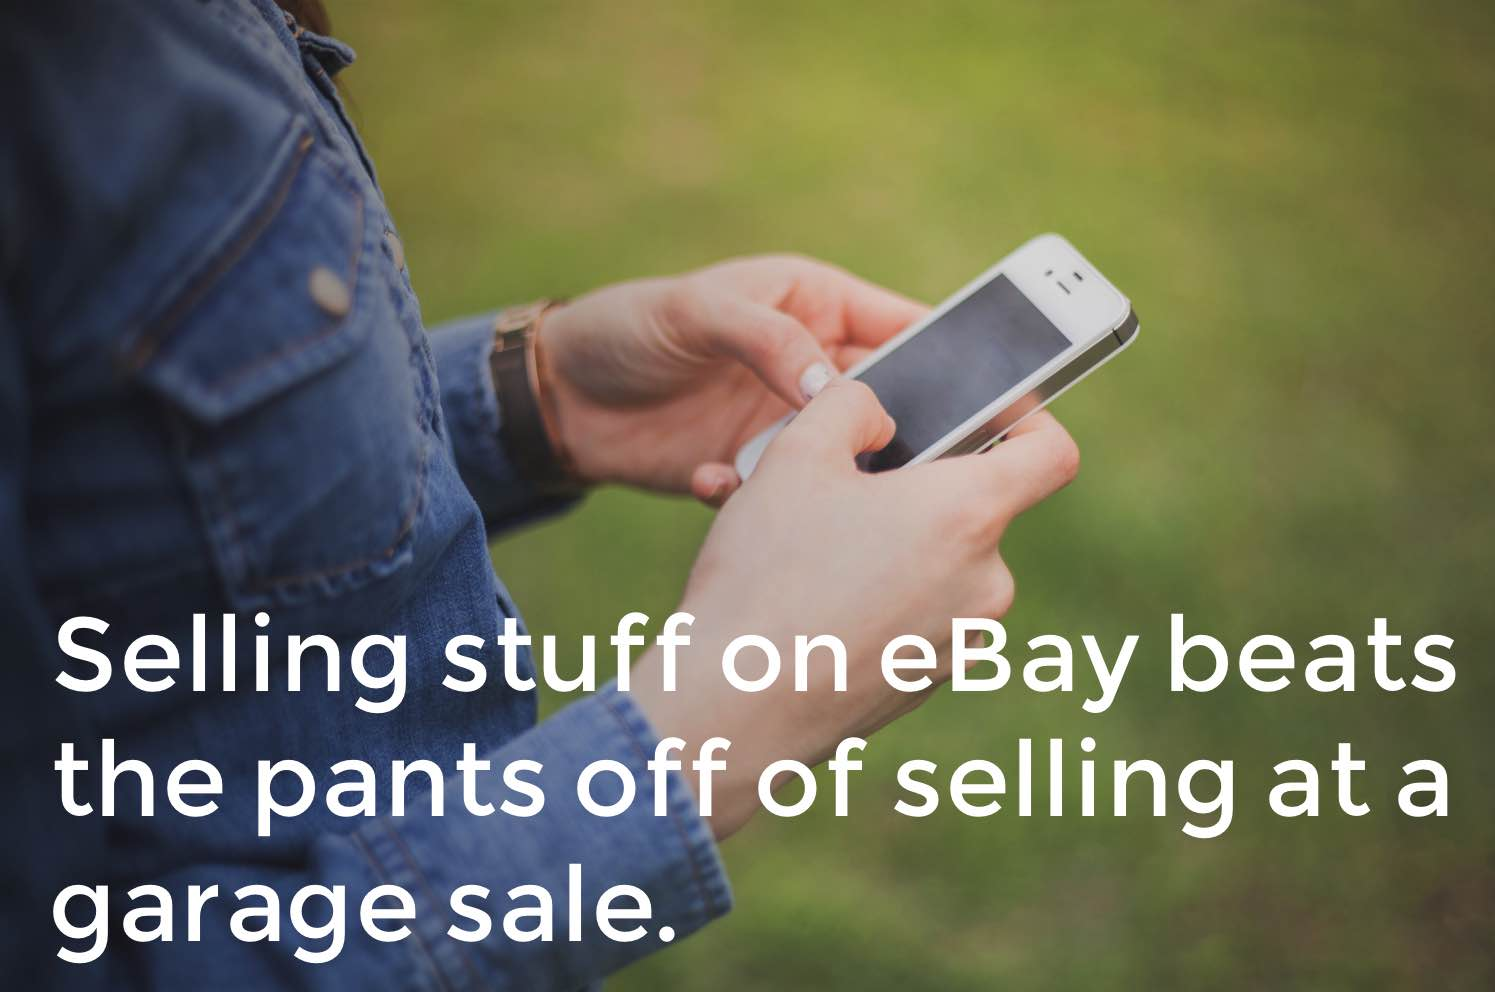 Selling stuff on eBay beats the pants off of selling at a garage sale.